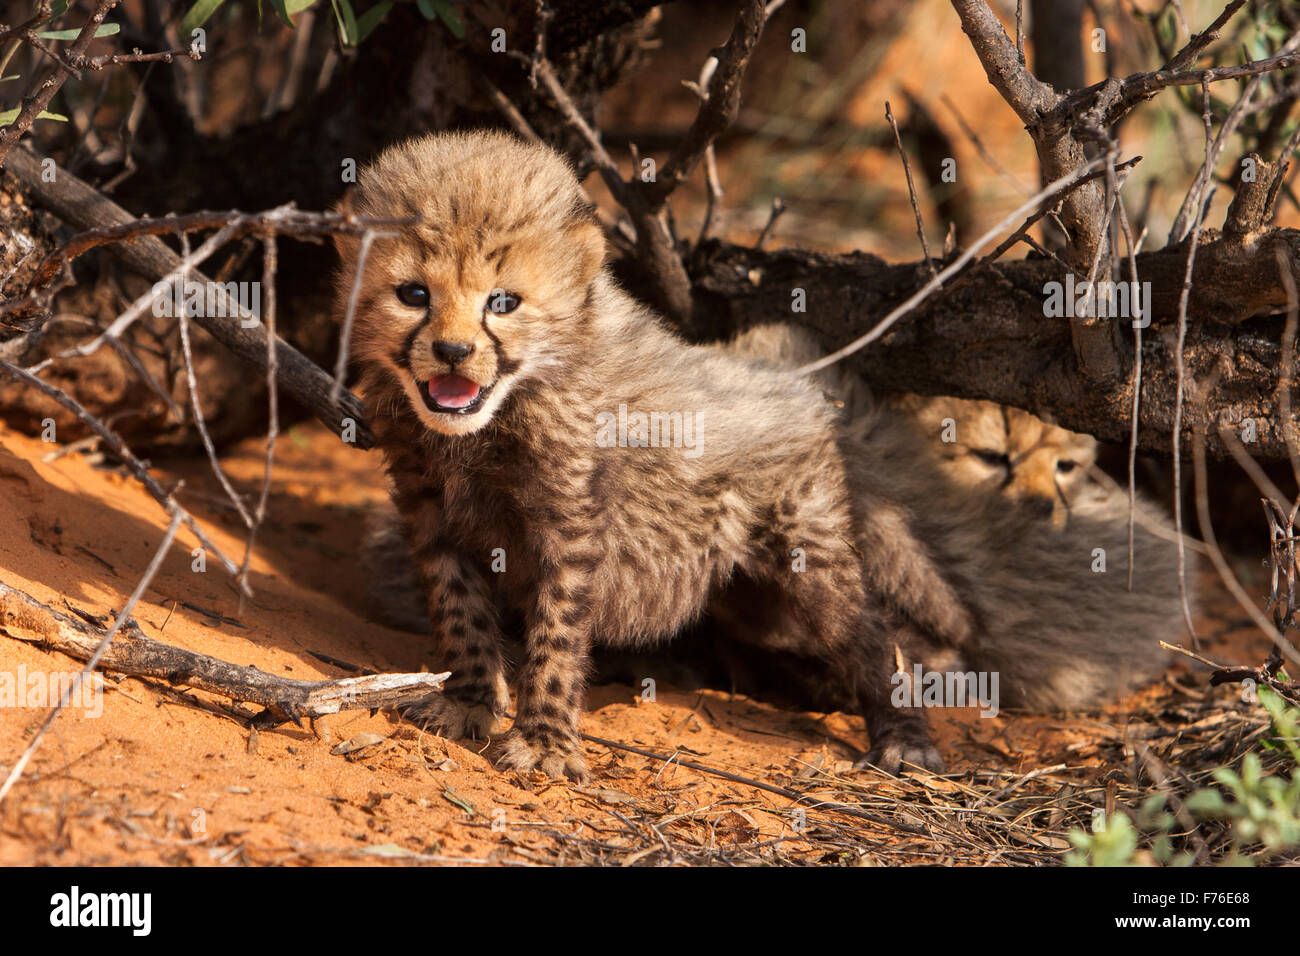 Cheetah cubs close to a tree on a sand dune in the Kgalagadi Transfrontier Park - Stock Image